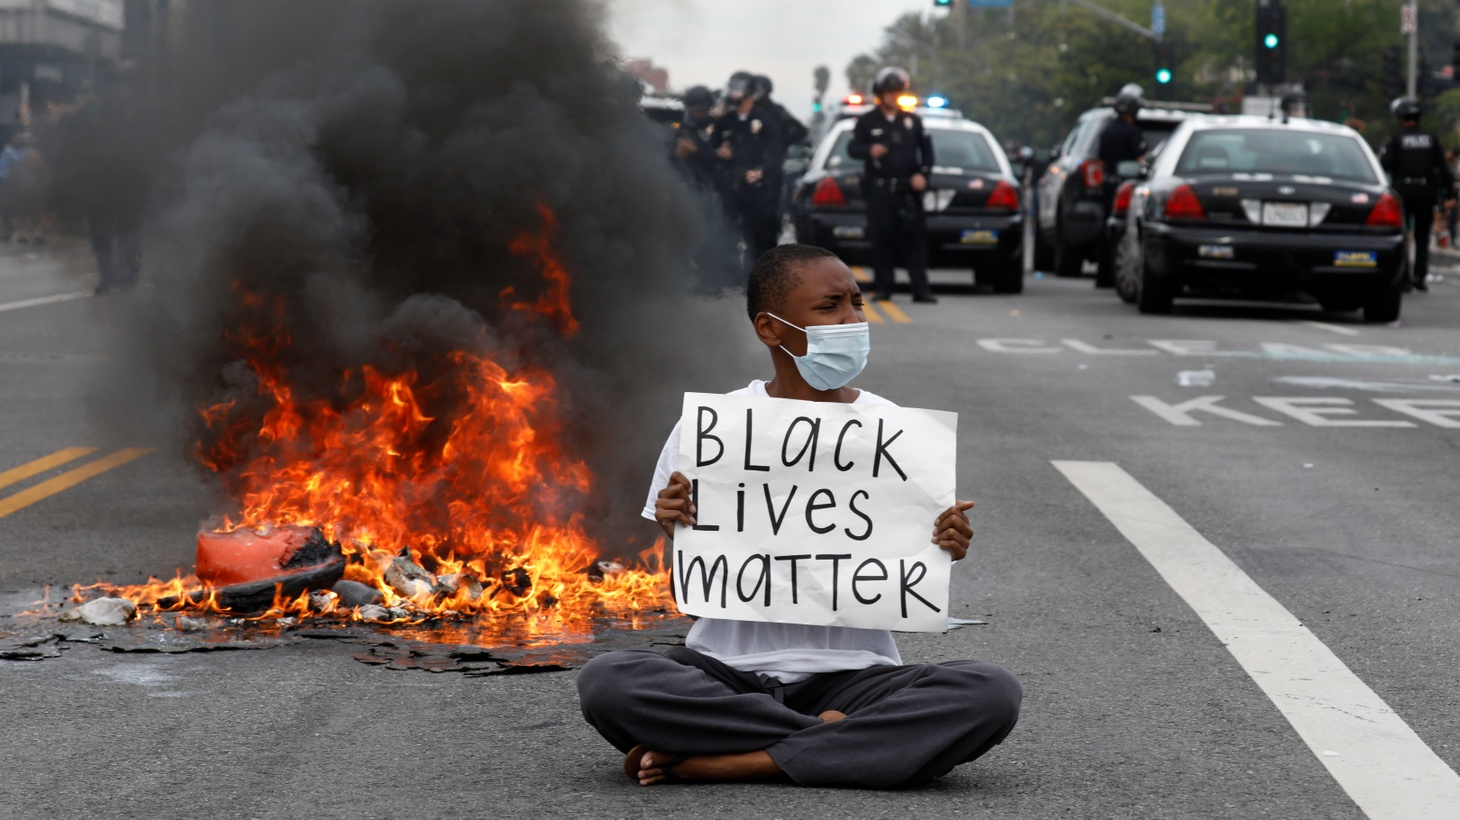 A demonstrator holds a placard during a protest against the death in Minneapolis police custody of George Floyd, in Los Angeles, May 30, 2020.